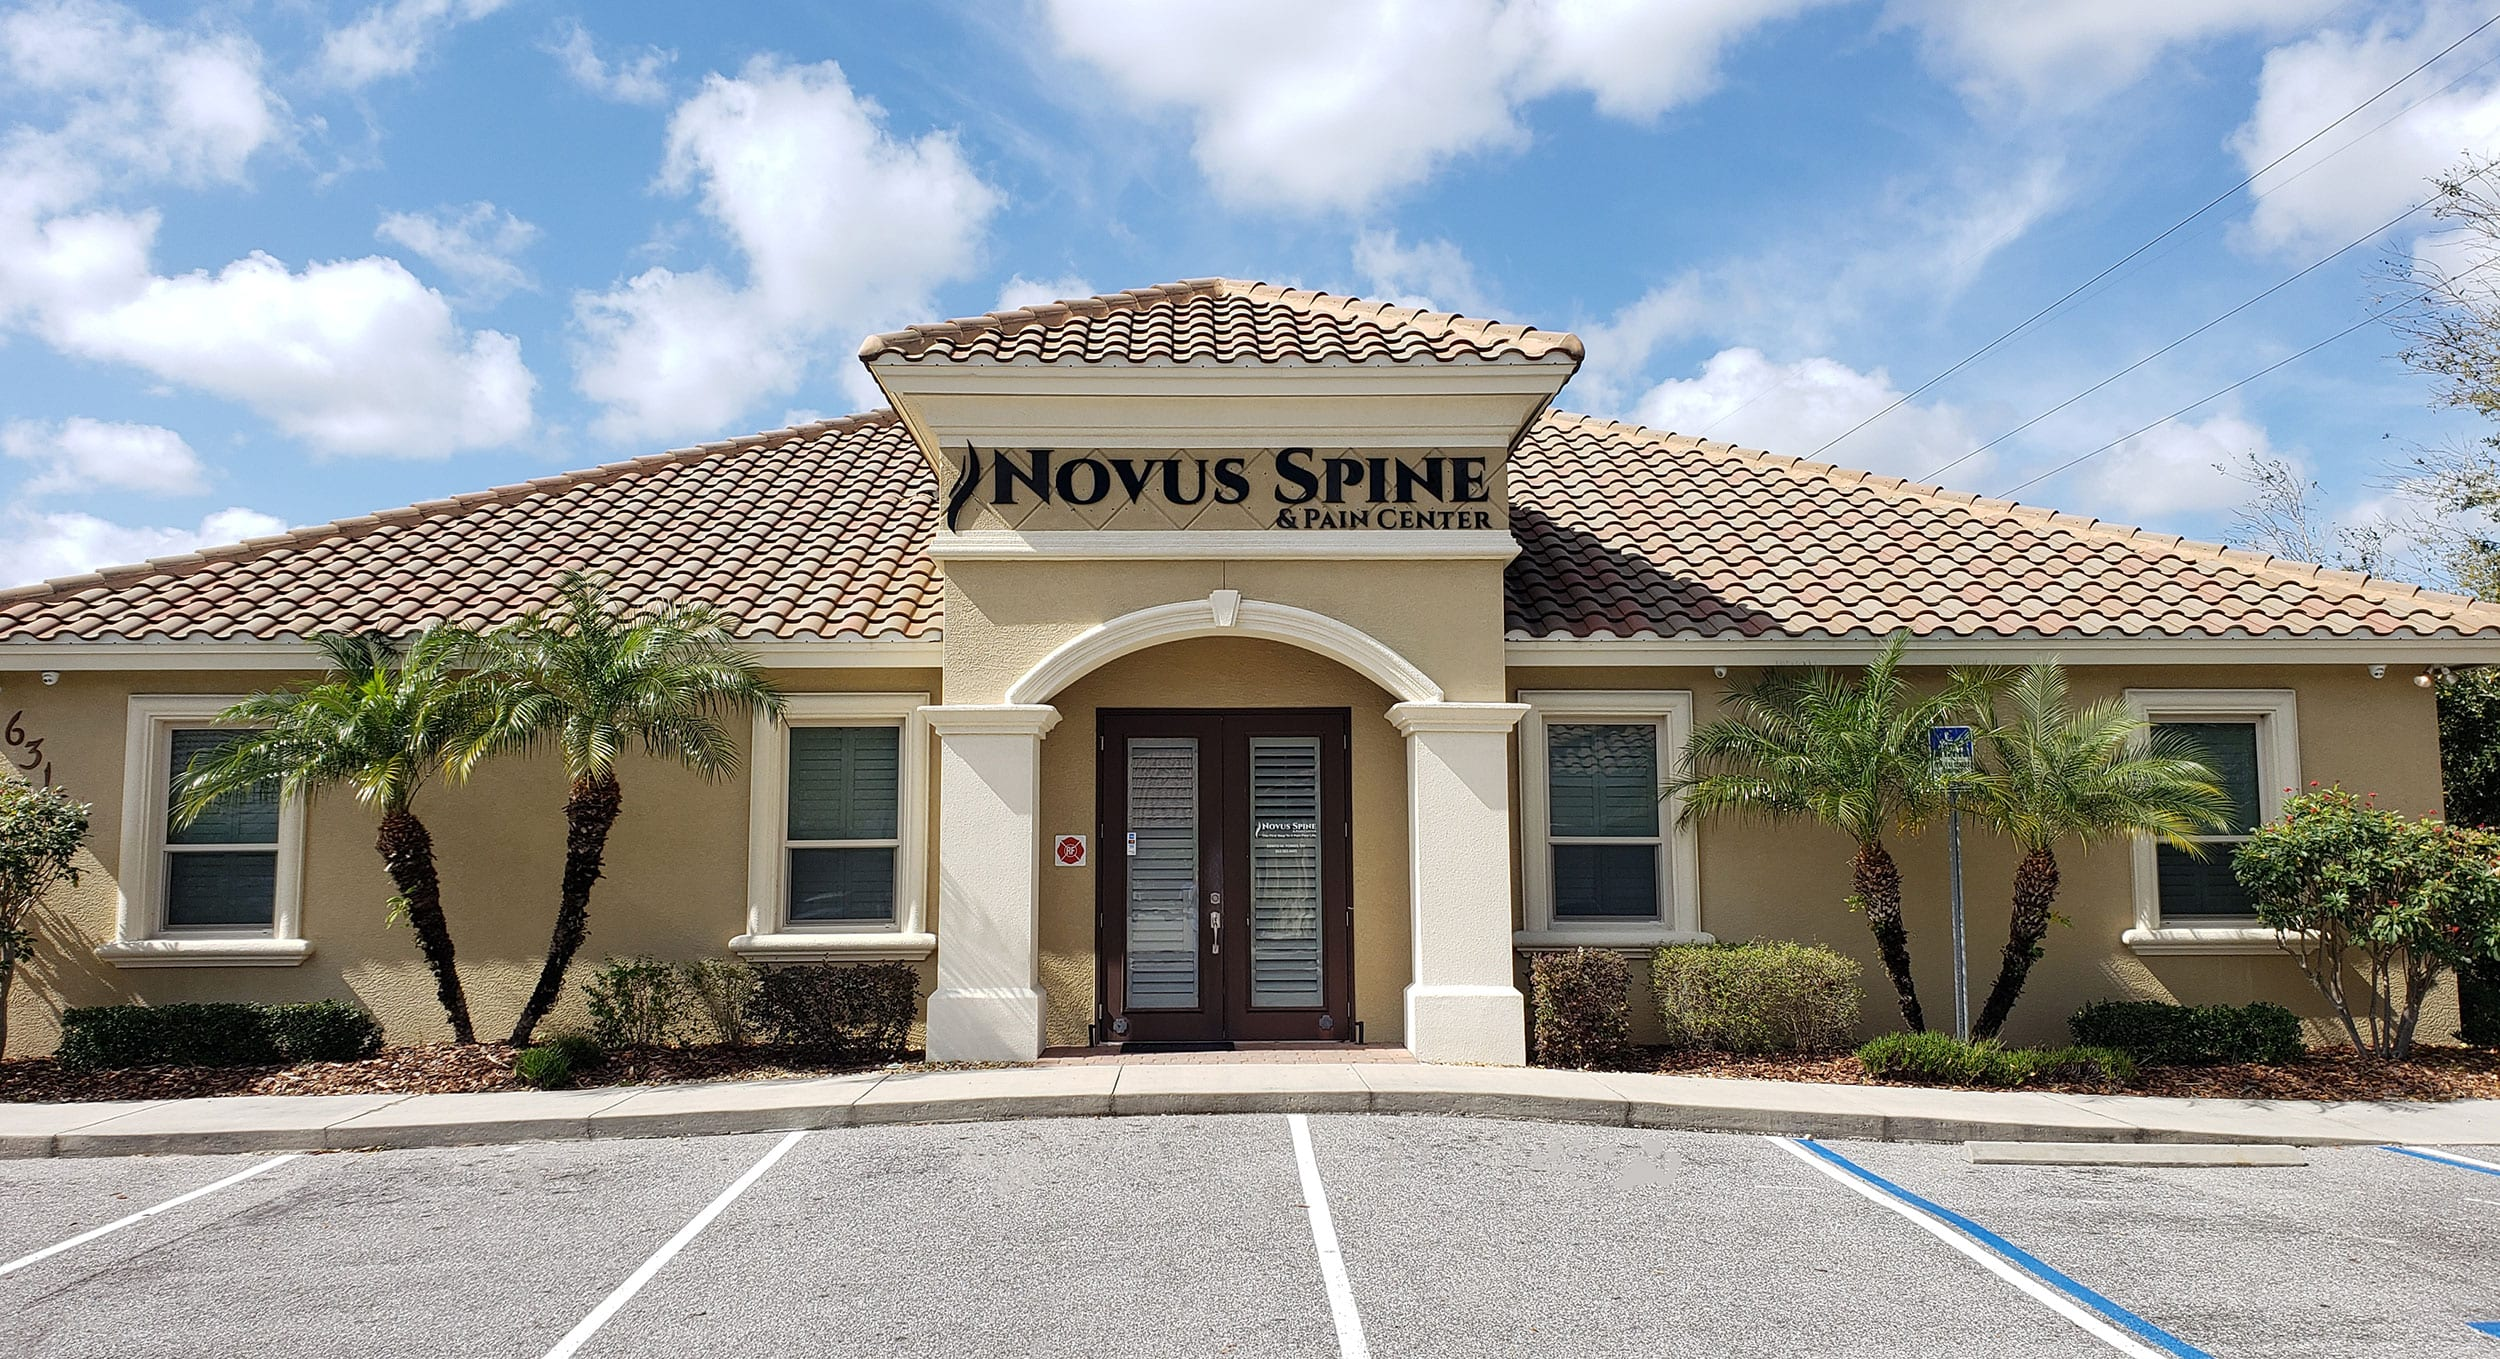 Novus Spine & Pain Center exterior